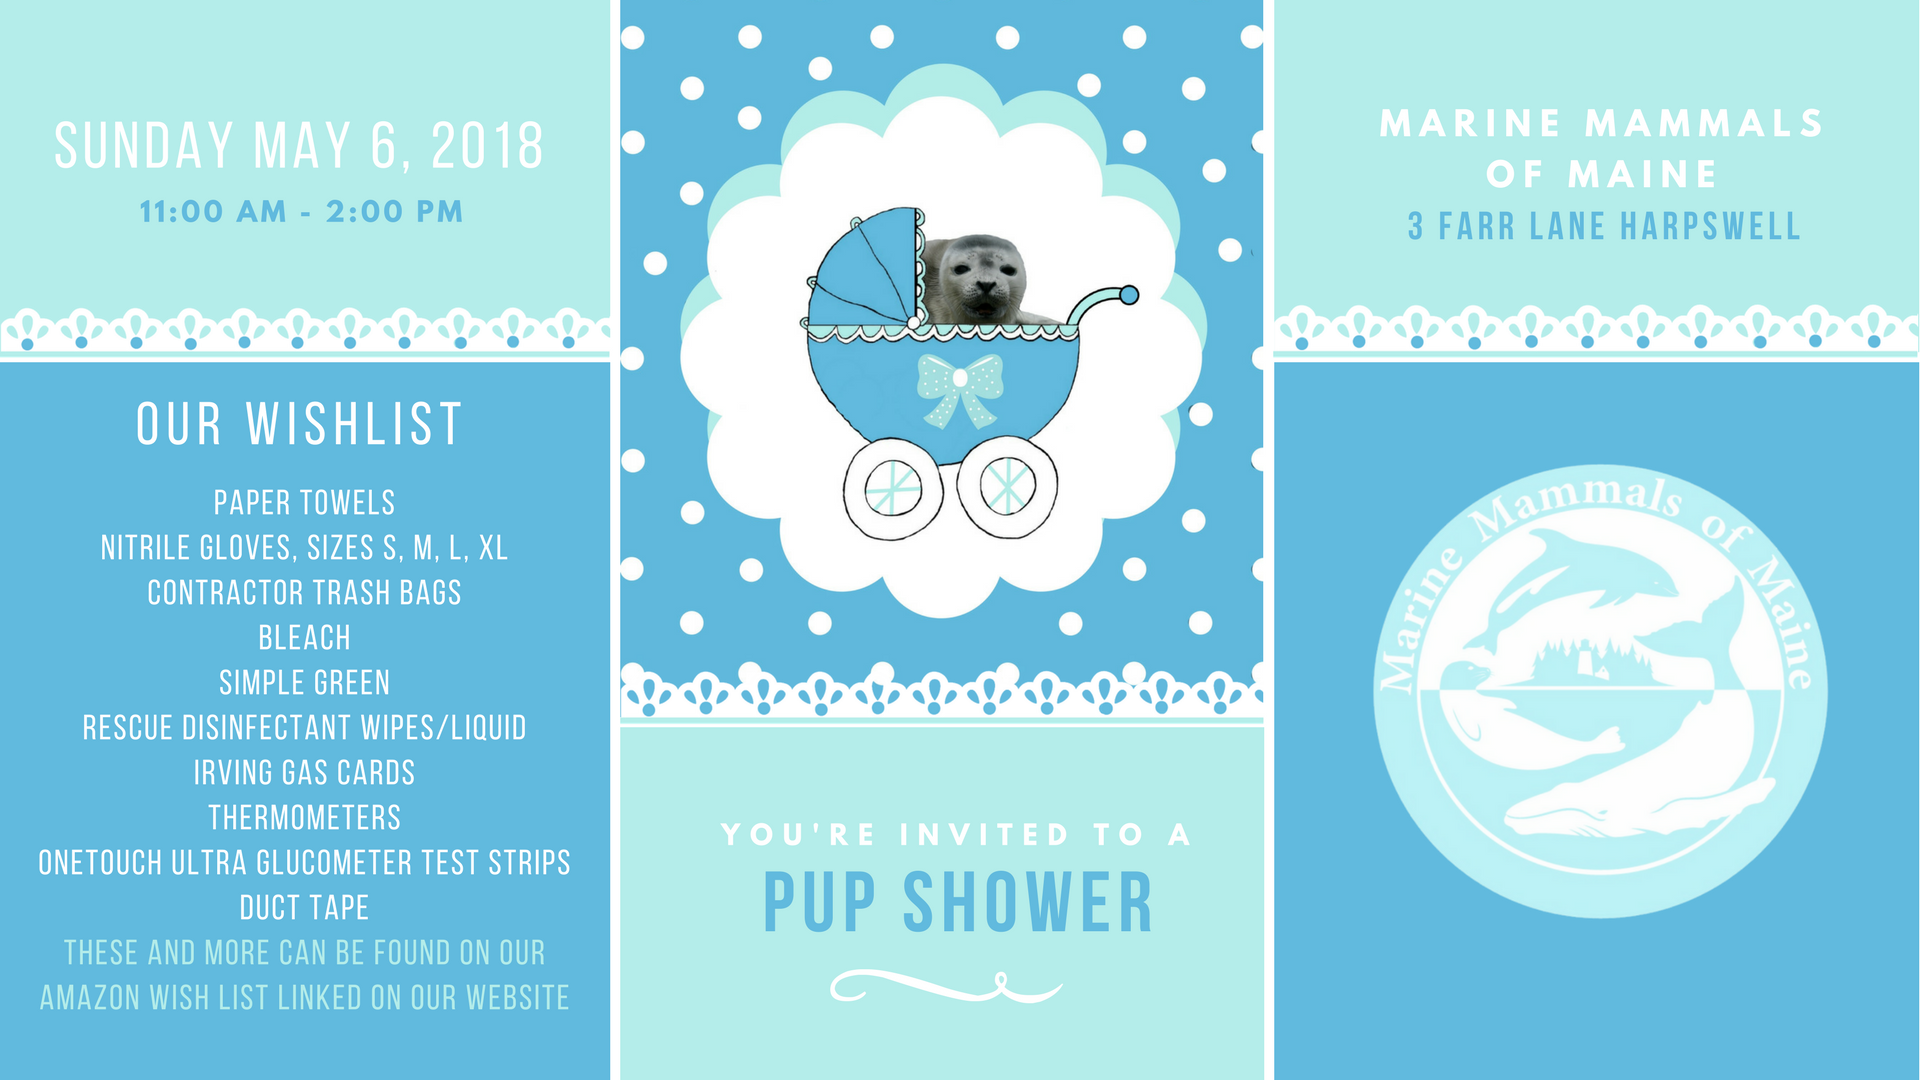 You're Invited to a Pup Shower! @ Marine Mammals of Maine